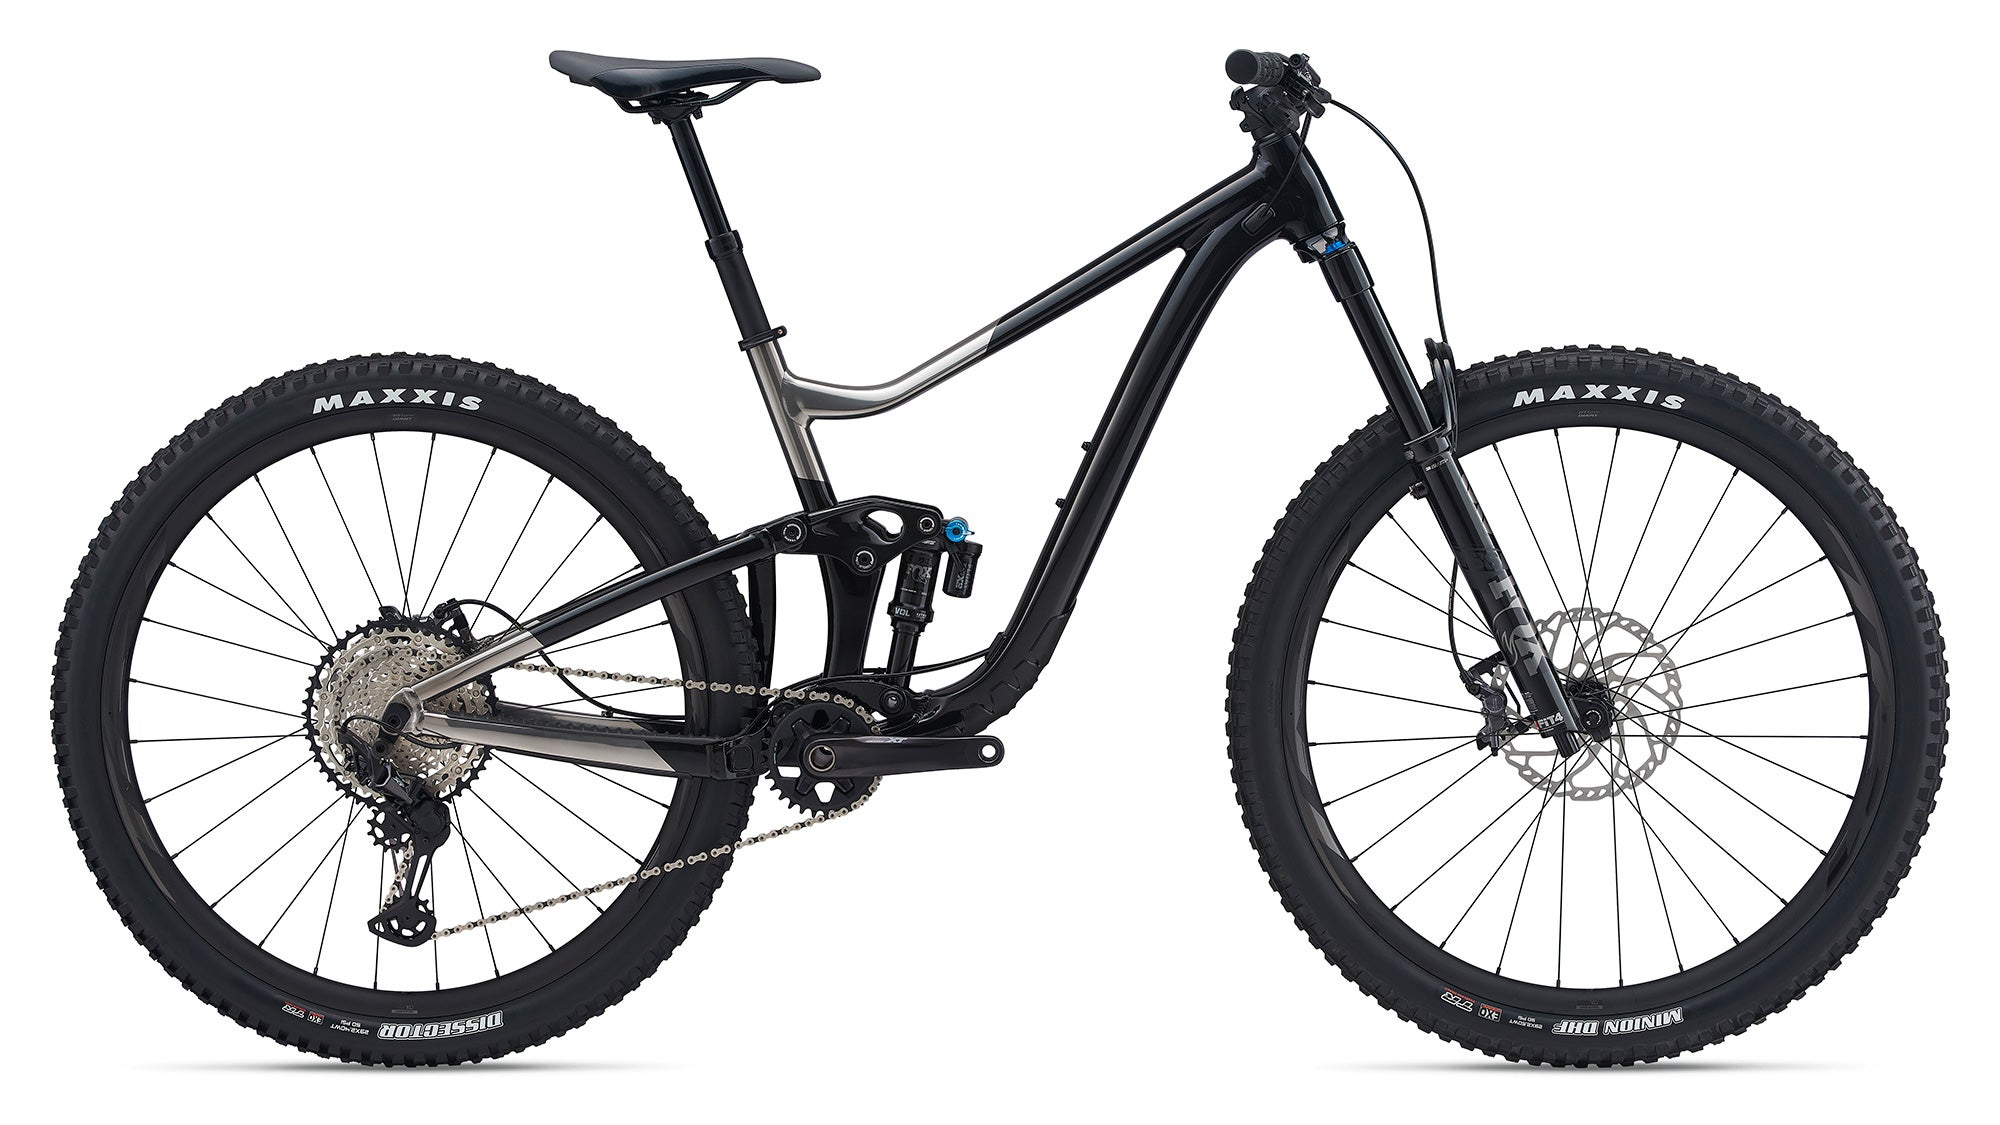 Giant Trance X 29, Liv Intrigue 29 let you choose your geometry – VeloNews.com